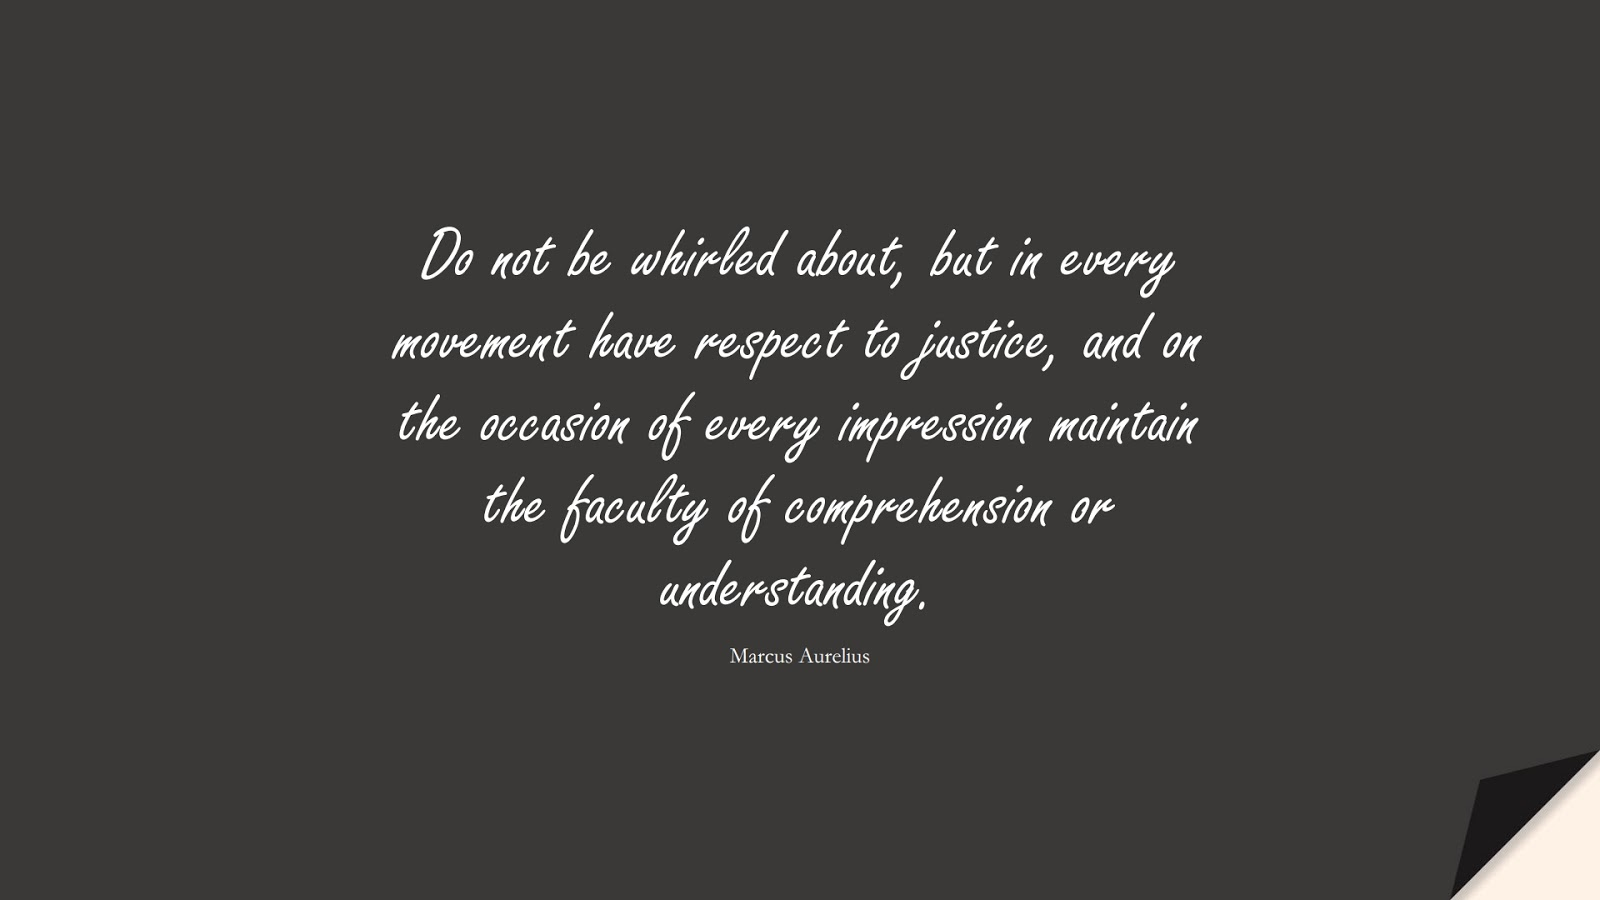 Do not be whirled about, but in every movement have respect to justice, and on the occasion of every impression maintain the faculty of comprehension or understanding. (Marcus Aurelius);  #MarcusAureliusQuotes